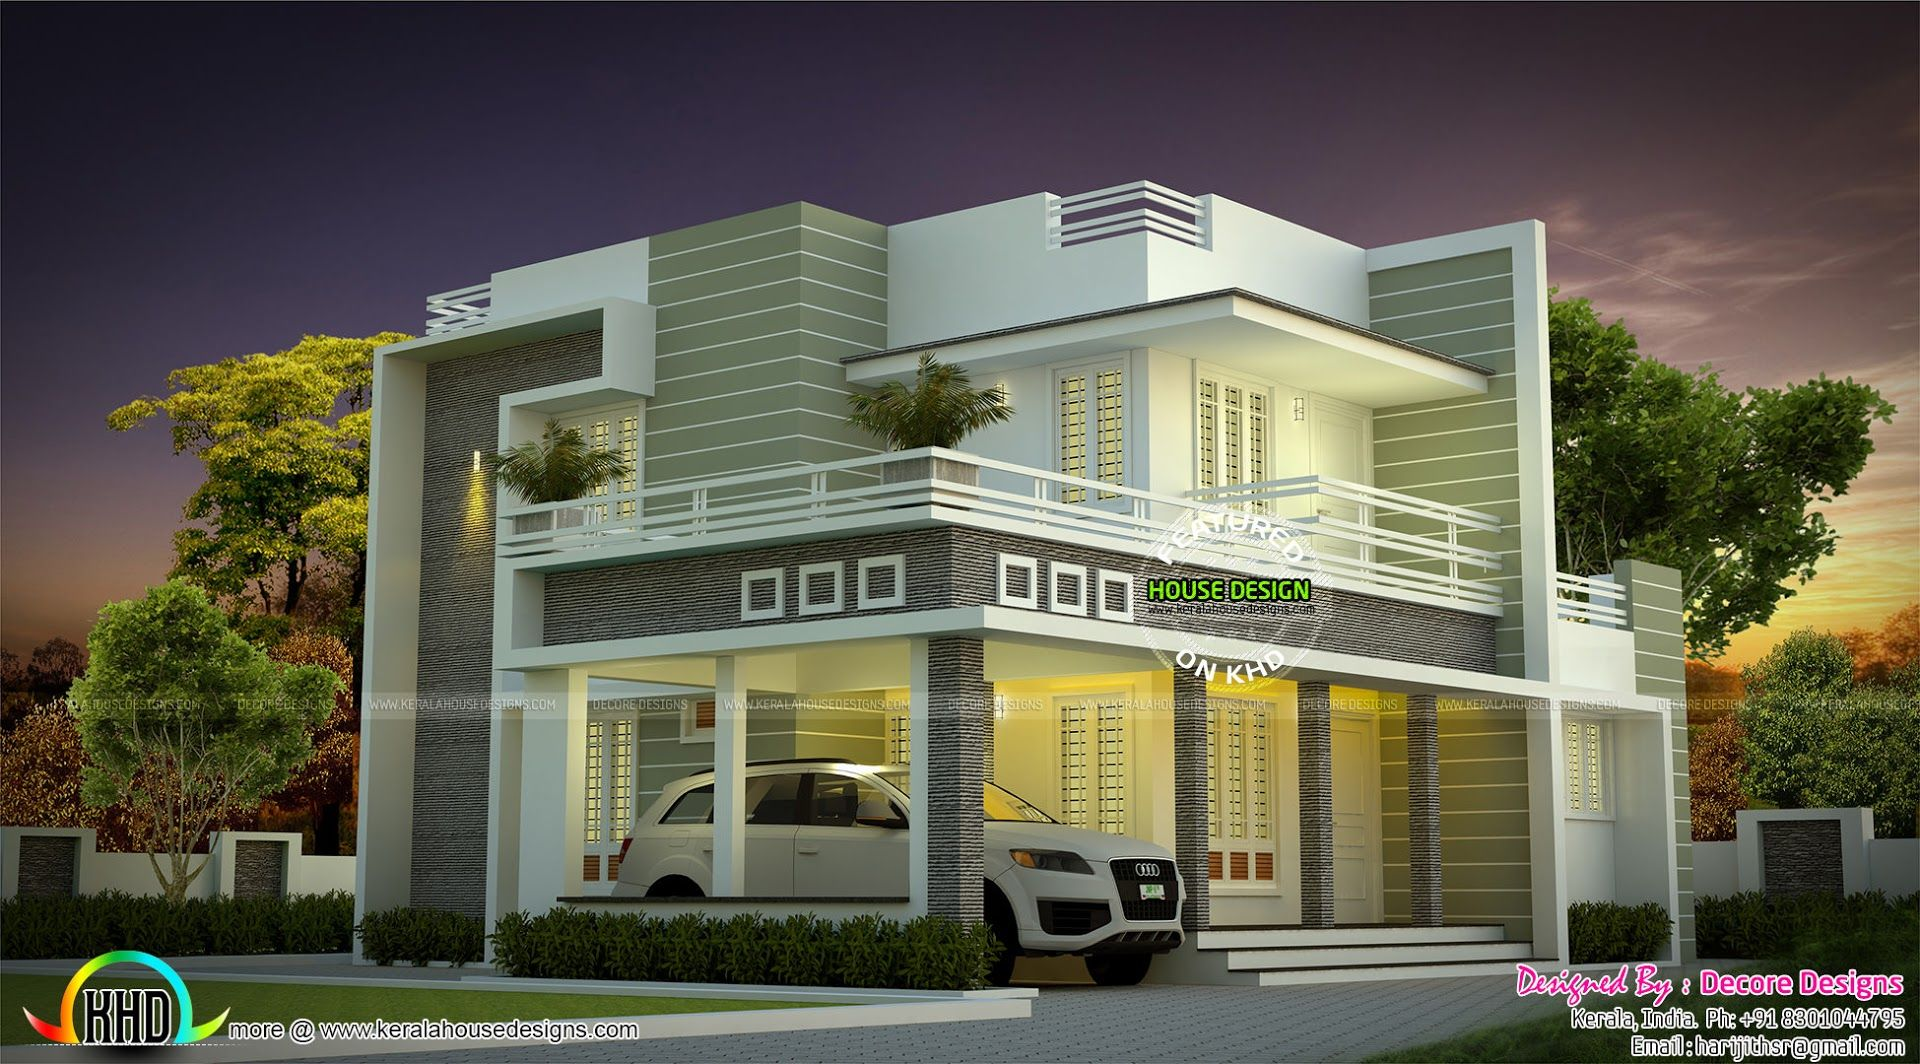 beautiful modern house architecture kerala home design and floor plan creator free excerpt floorplans open - Floor Plan Creator Free